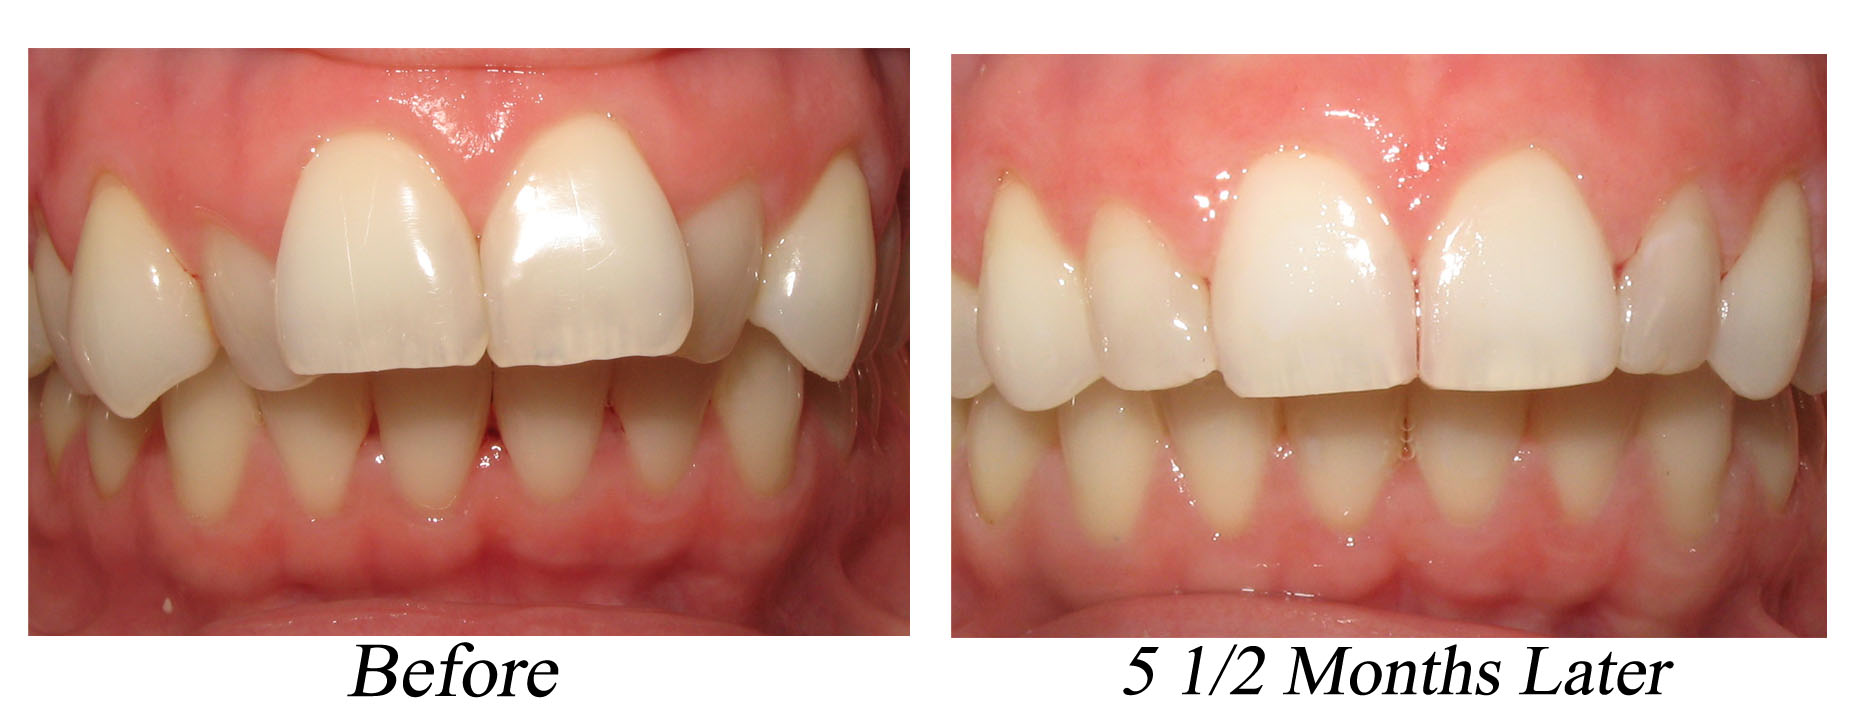 James Lee, DDS San Antonio Dentist Six Month Braces Powerprox Periolase Laser Gum Treatment